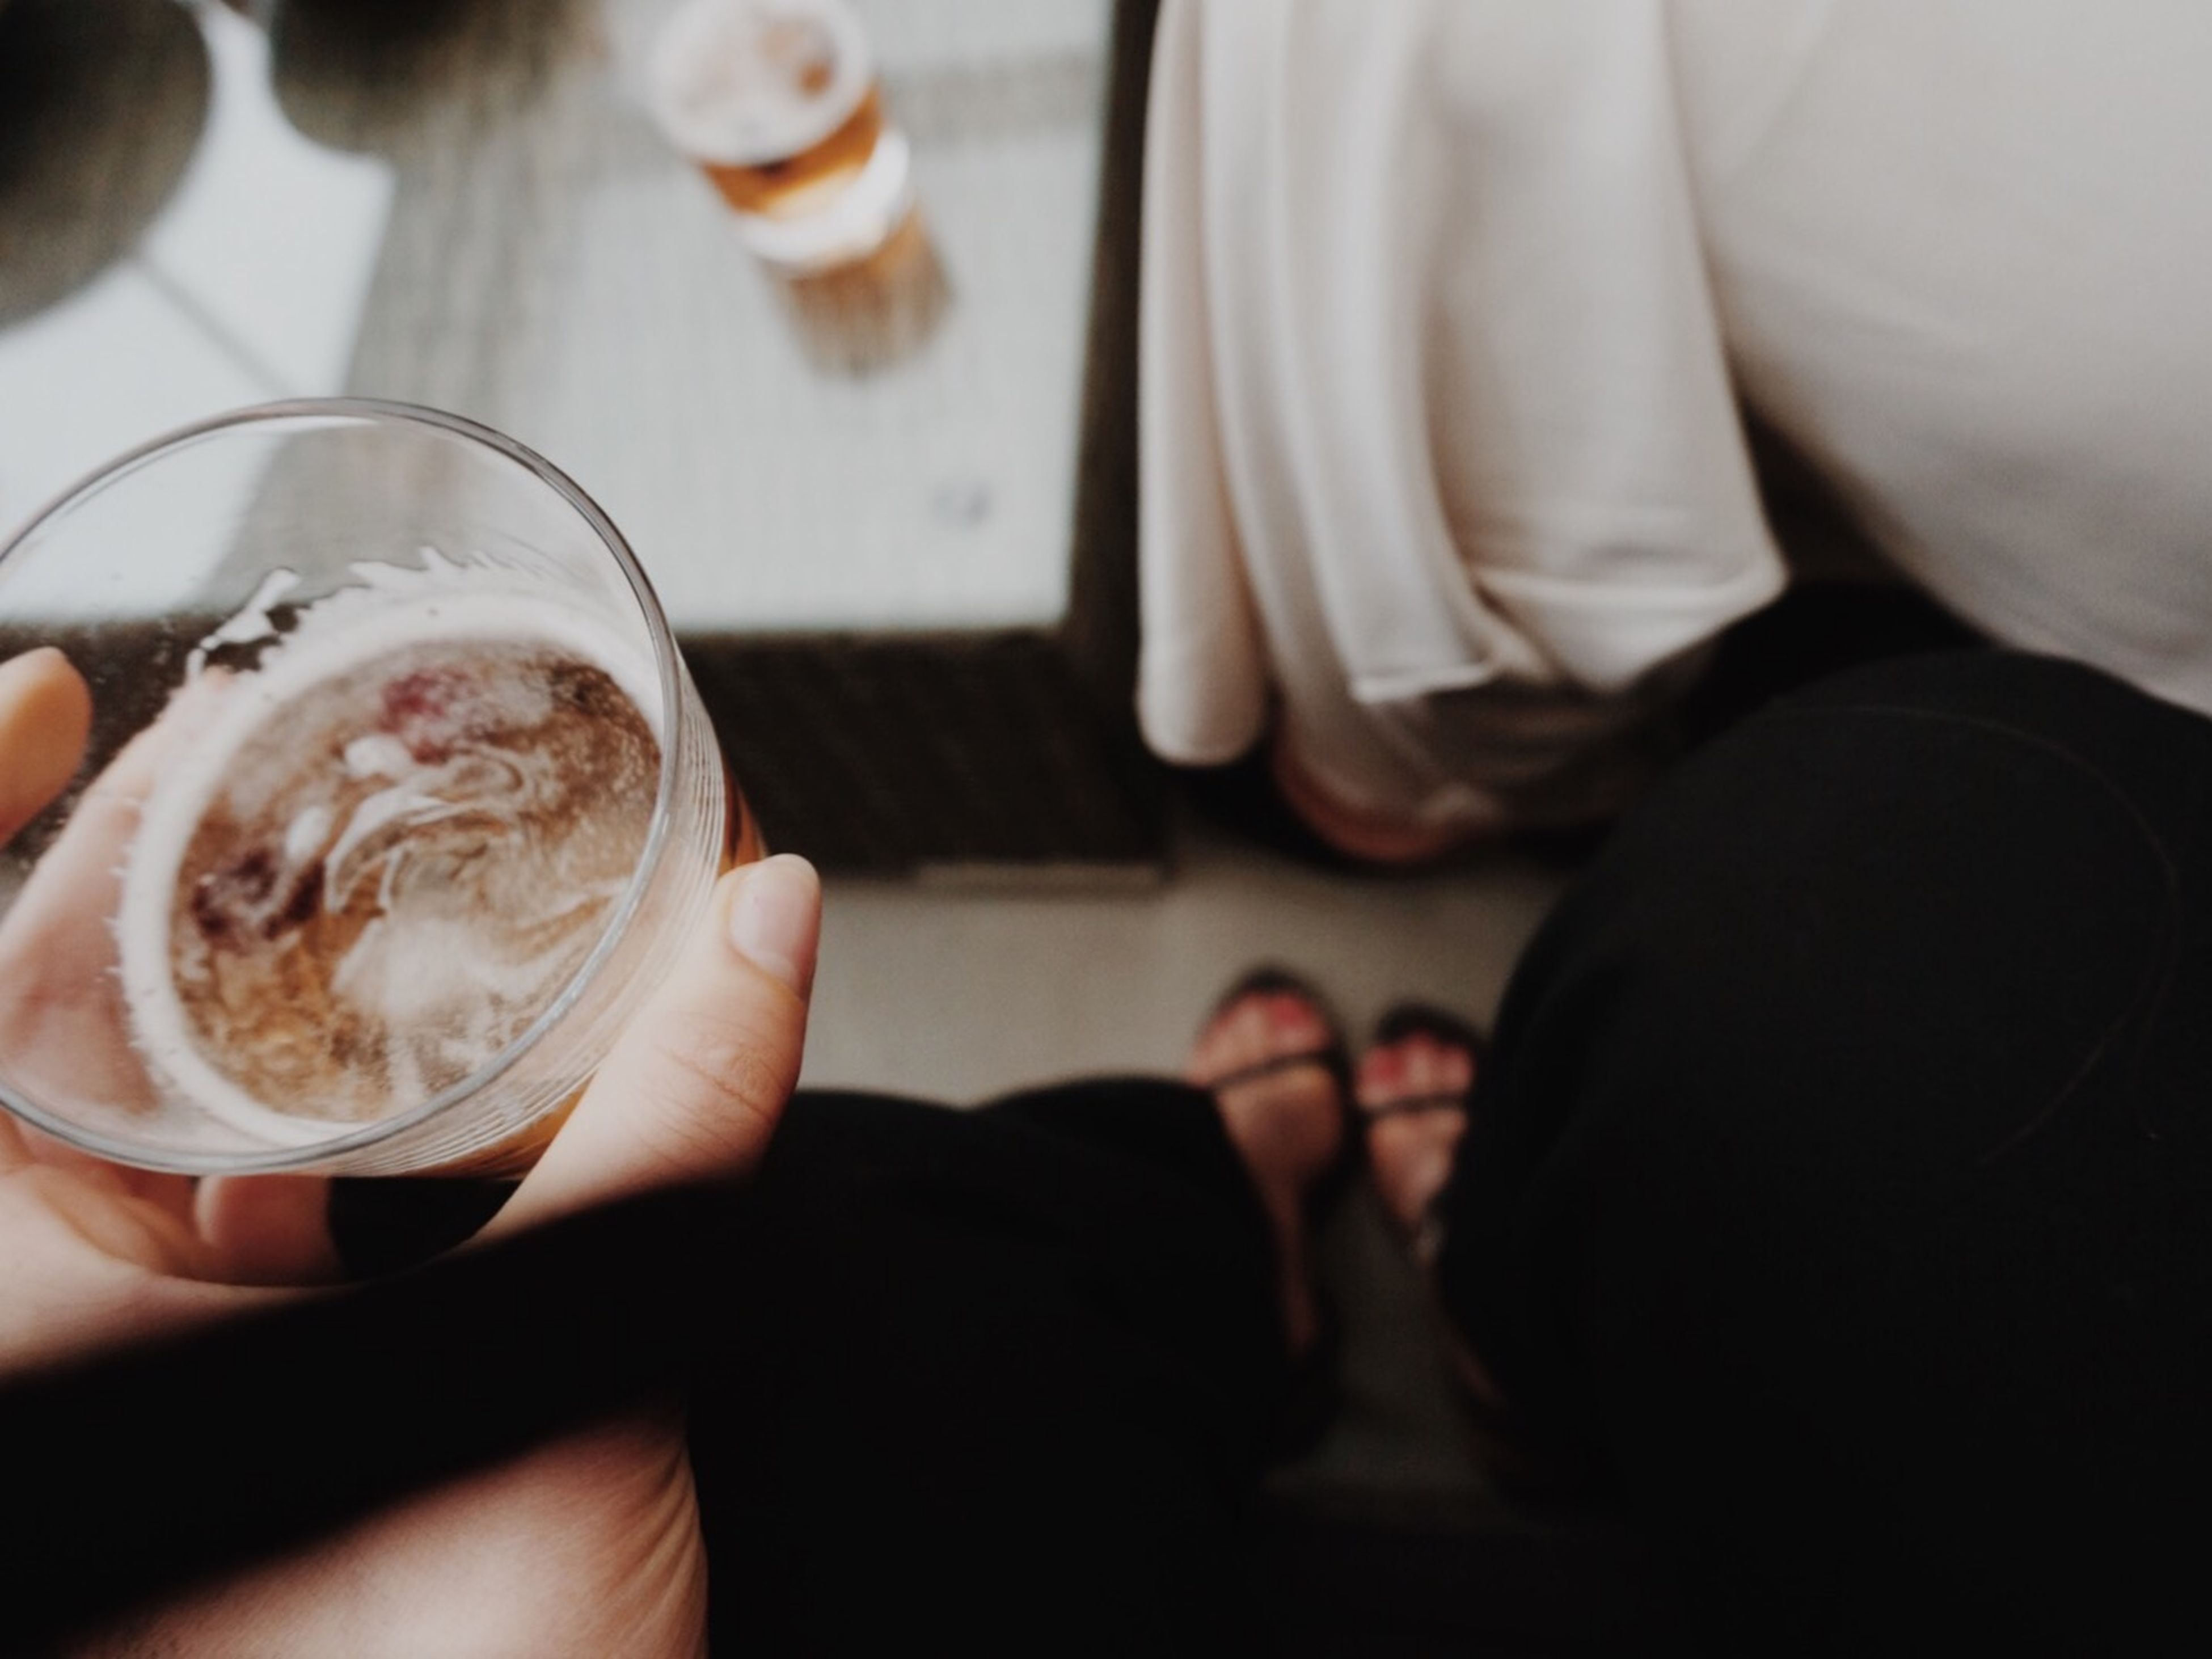 food and drink, drink, indoors, refreshment, freshness, lifestyles, person, coffee - drink, coffee cup, leisure activity, table, holding, men, close-up, drinking glass, part of